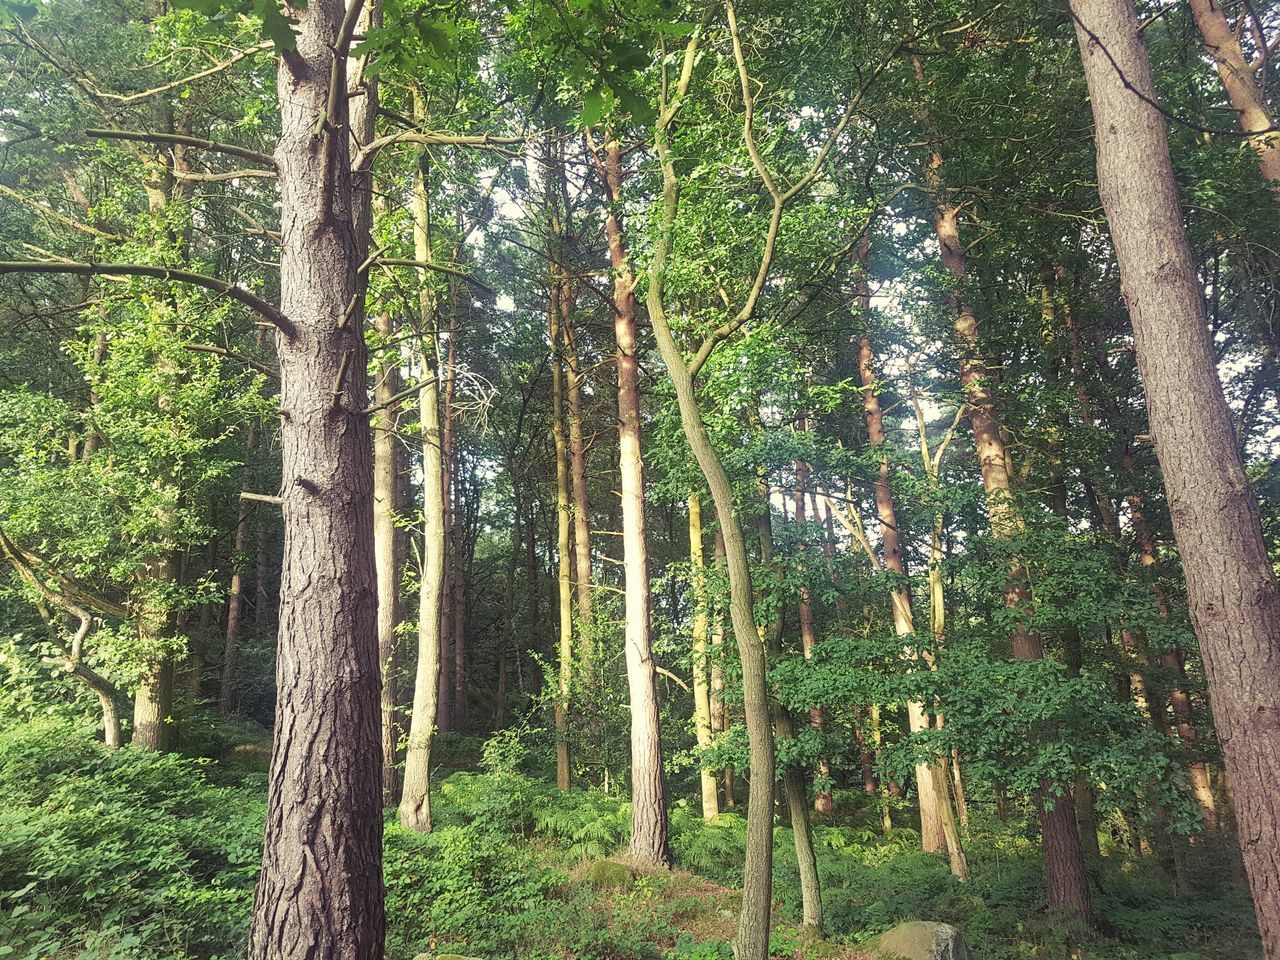 PANORAMIC VIEW OF TREES IN FOREST